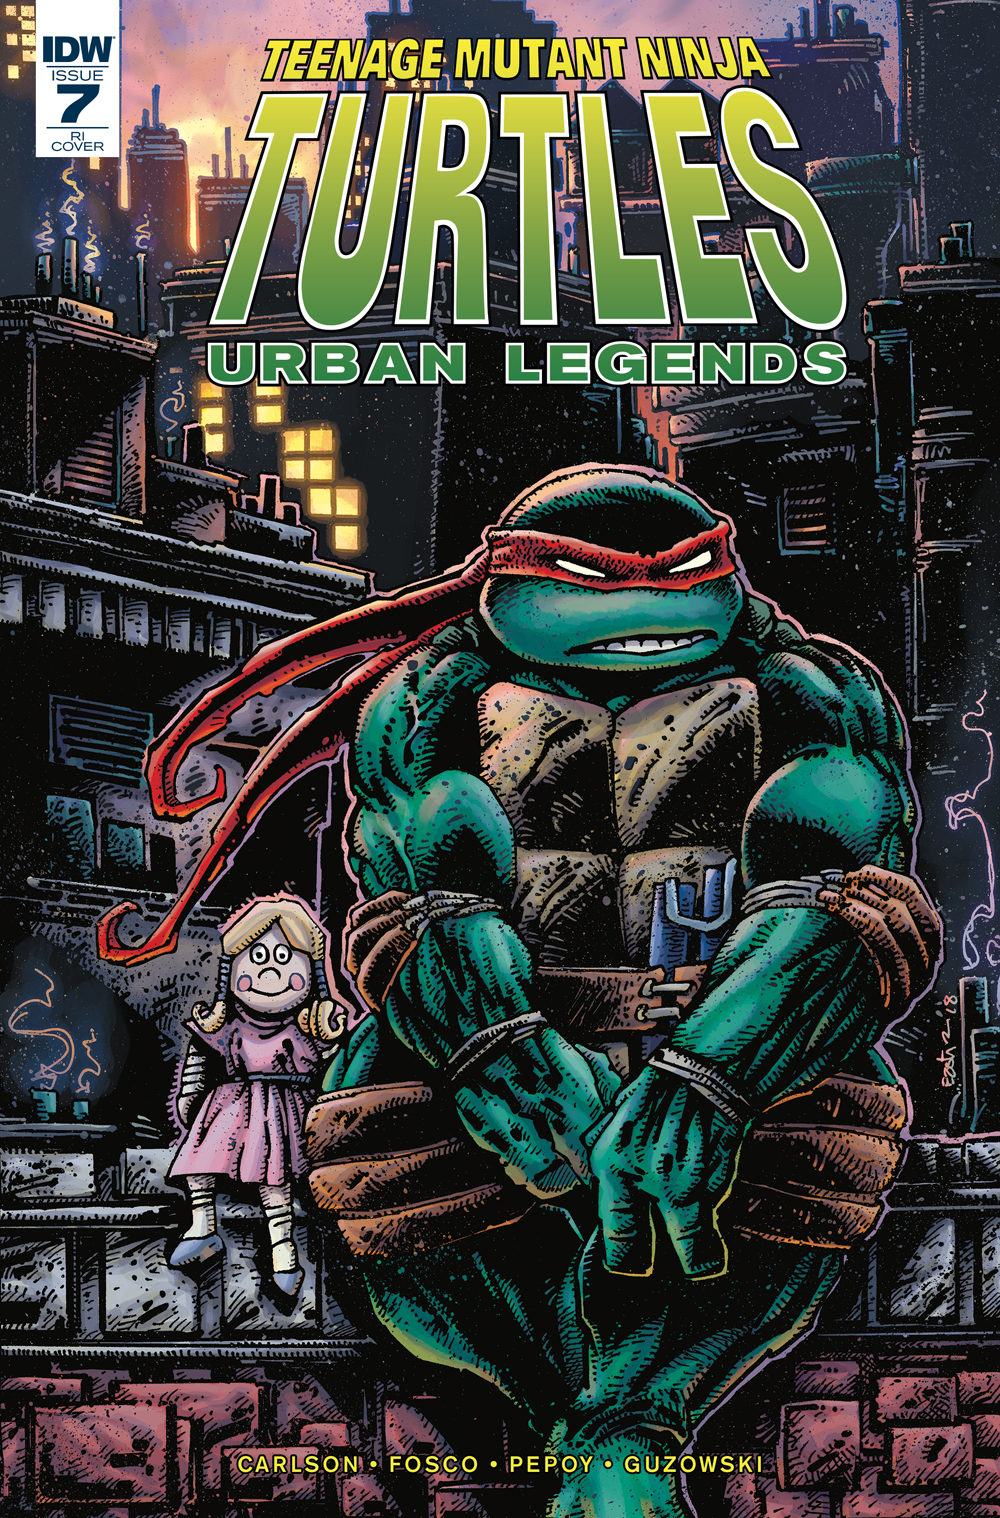 TMNT URBAN LEGENDS #7 10 COPY INCV EASTMAN